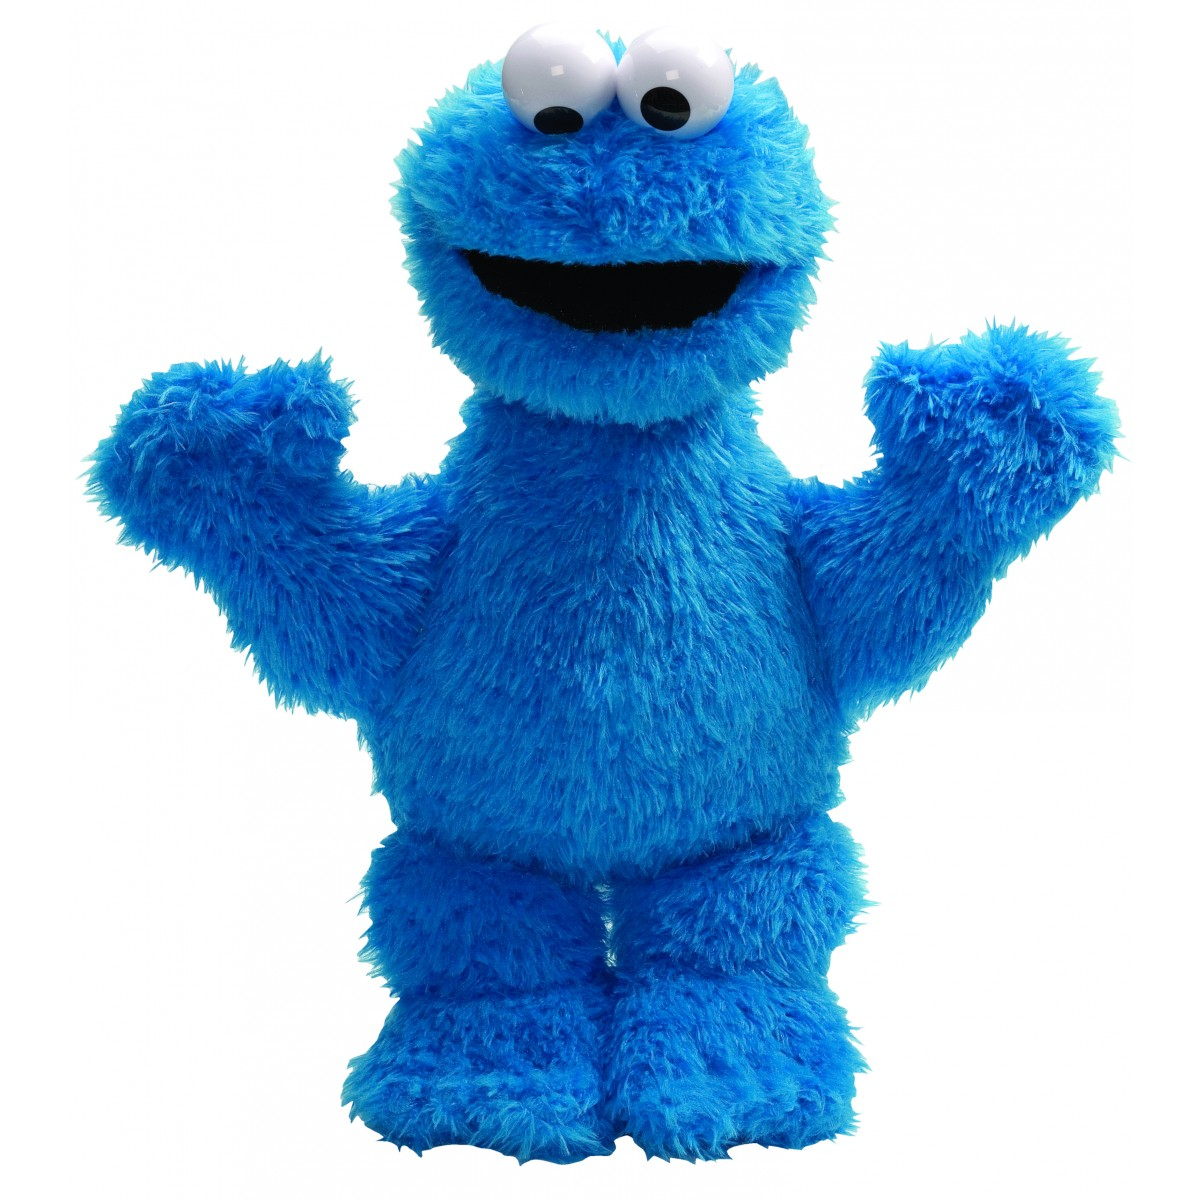 1200x1200 Free Cookie Monster Clipart Image